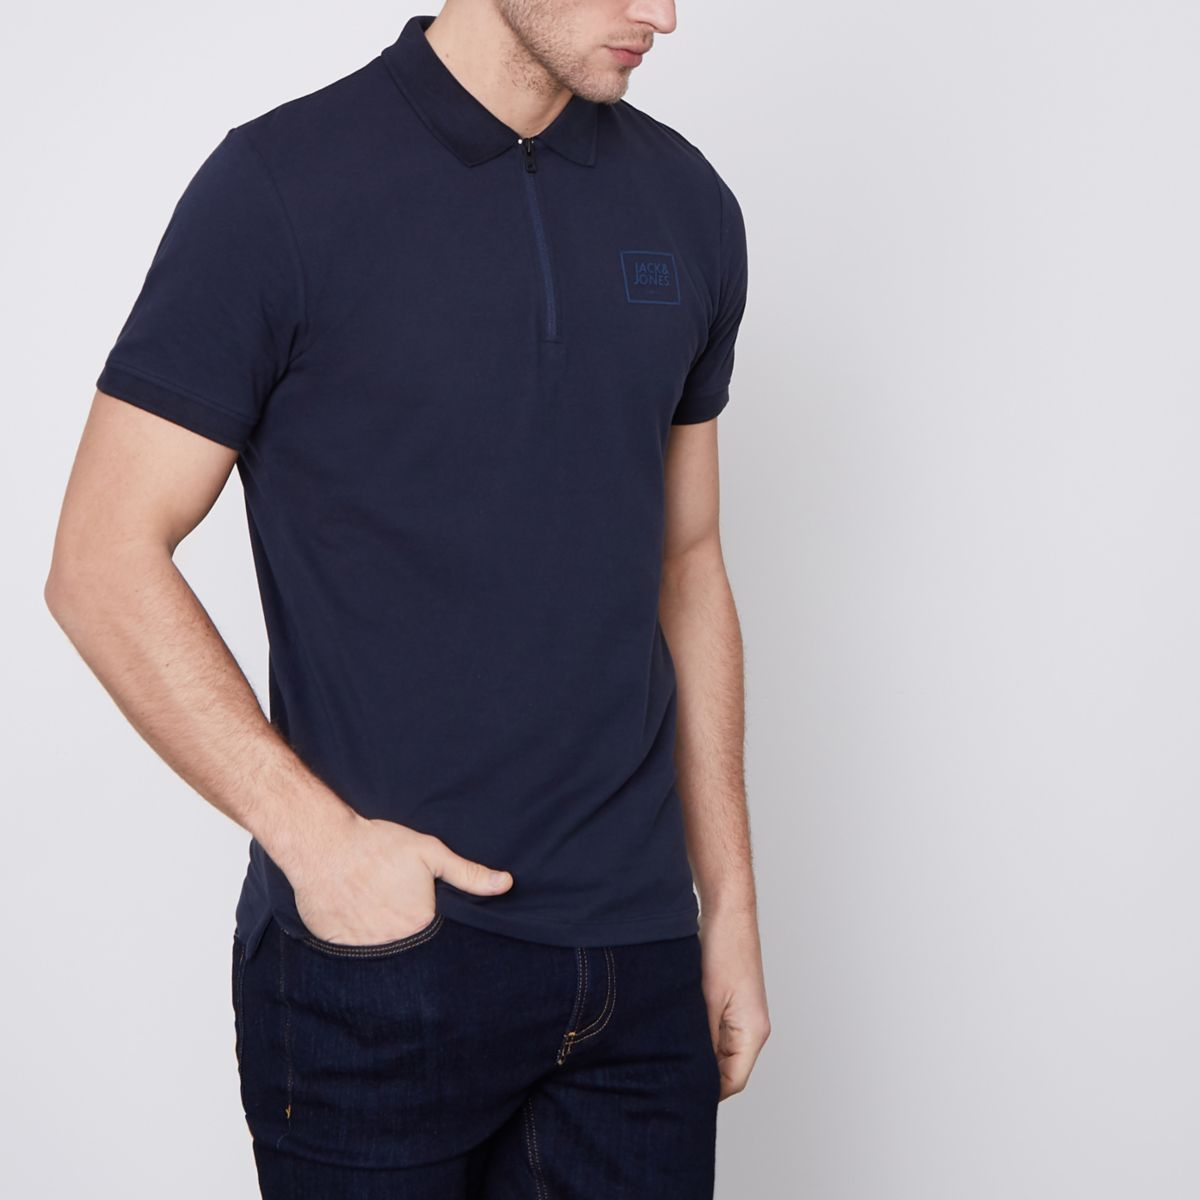 Jack & Jones Core navy zip polo shirt